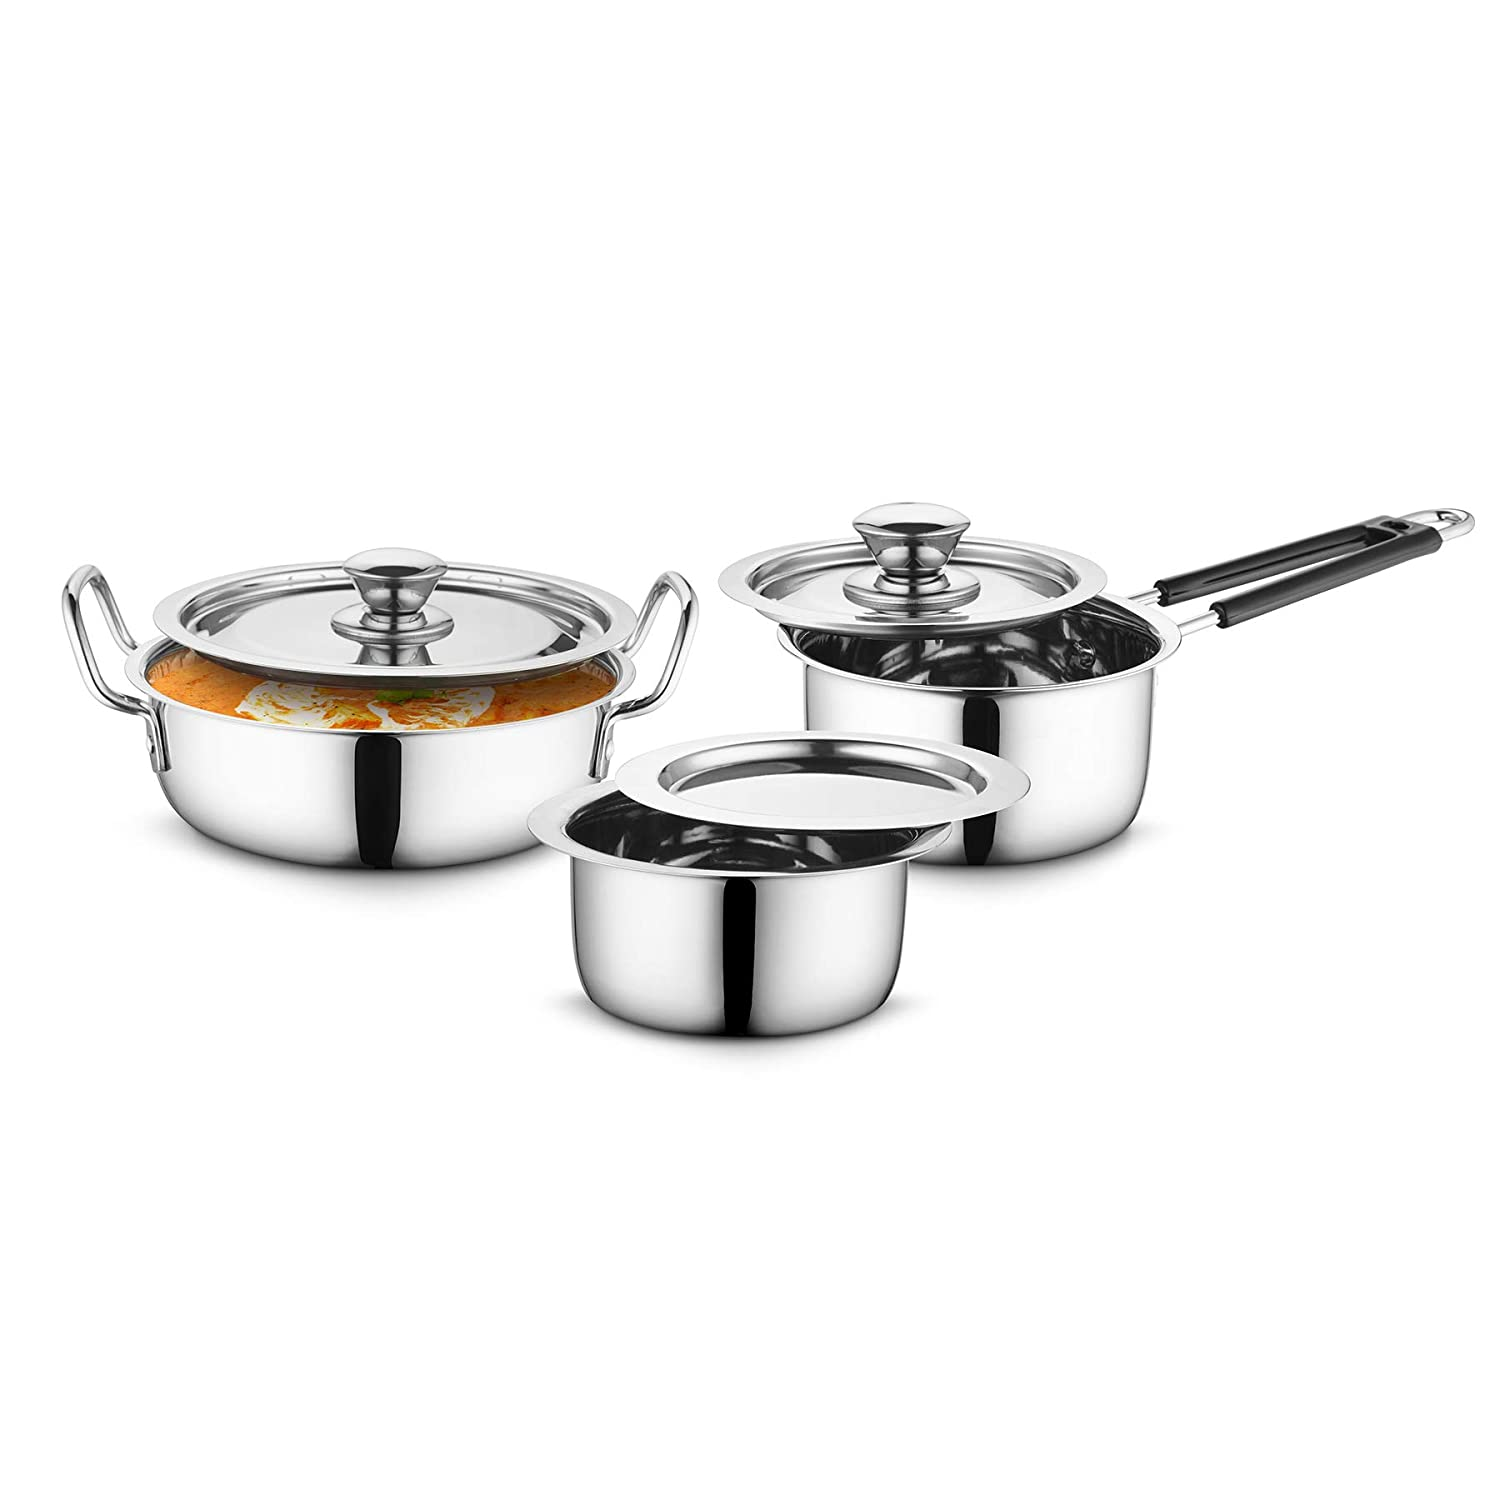 Stainless Steel Cookware 3 pcs Set with Stainless Steel Lid- (Silver, Tope- 1.5 Litre, Karahi- 2.5 Litre, Sauce Pan- 1.5 Litre)